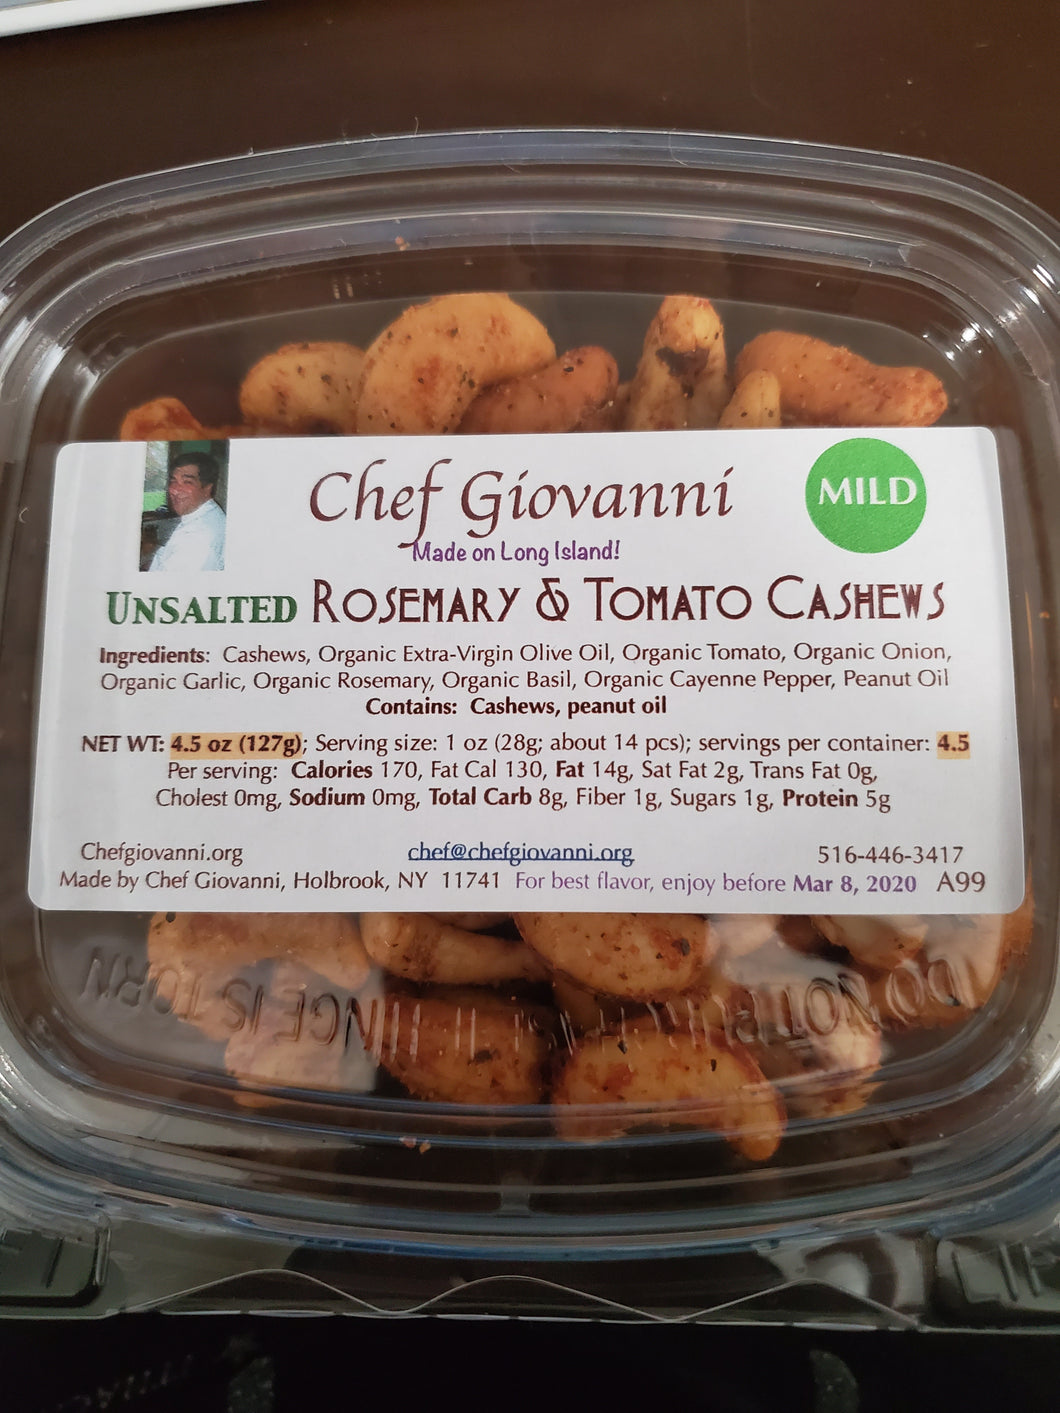 Chef Giovanni - Unsalted Rosemary & Tomato Cashews